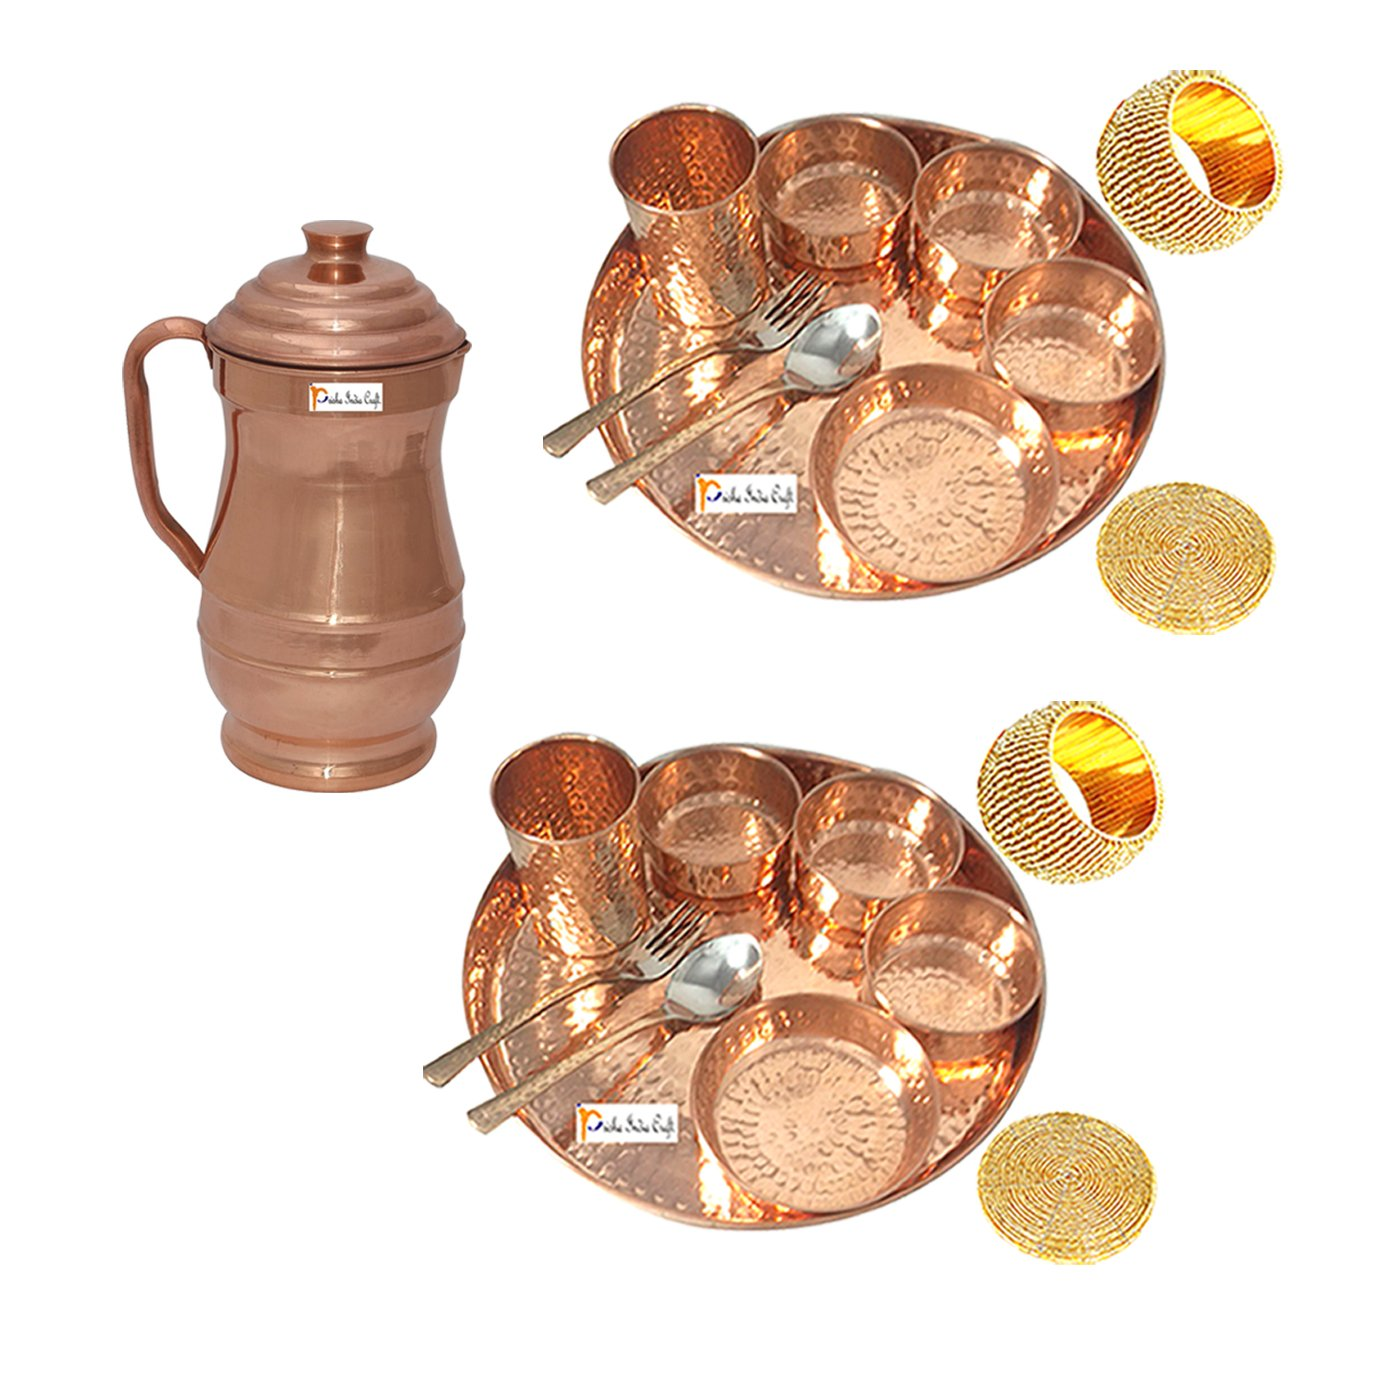 Prisha India Craft Set of 2 Indian Dinnerware Pure Copper Thali Set Traditional Dinner Set of Thali Plate Dia 12'', Bowl, Spoon, Fork, Glass and JUG - Christmas Gift